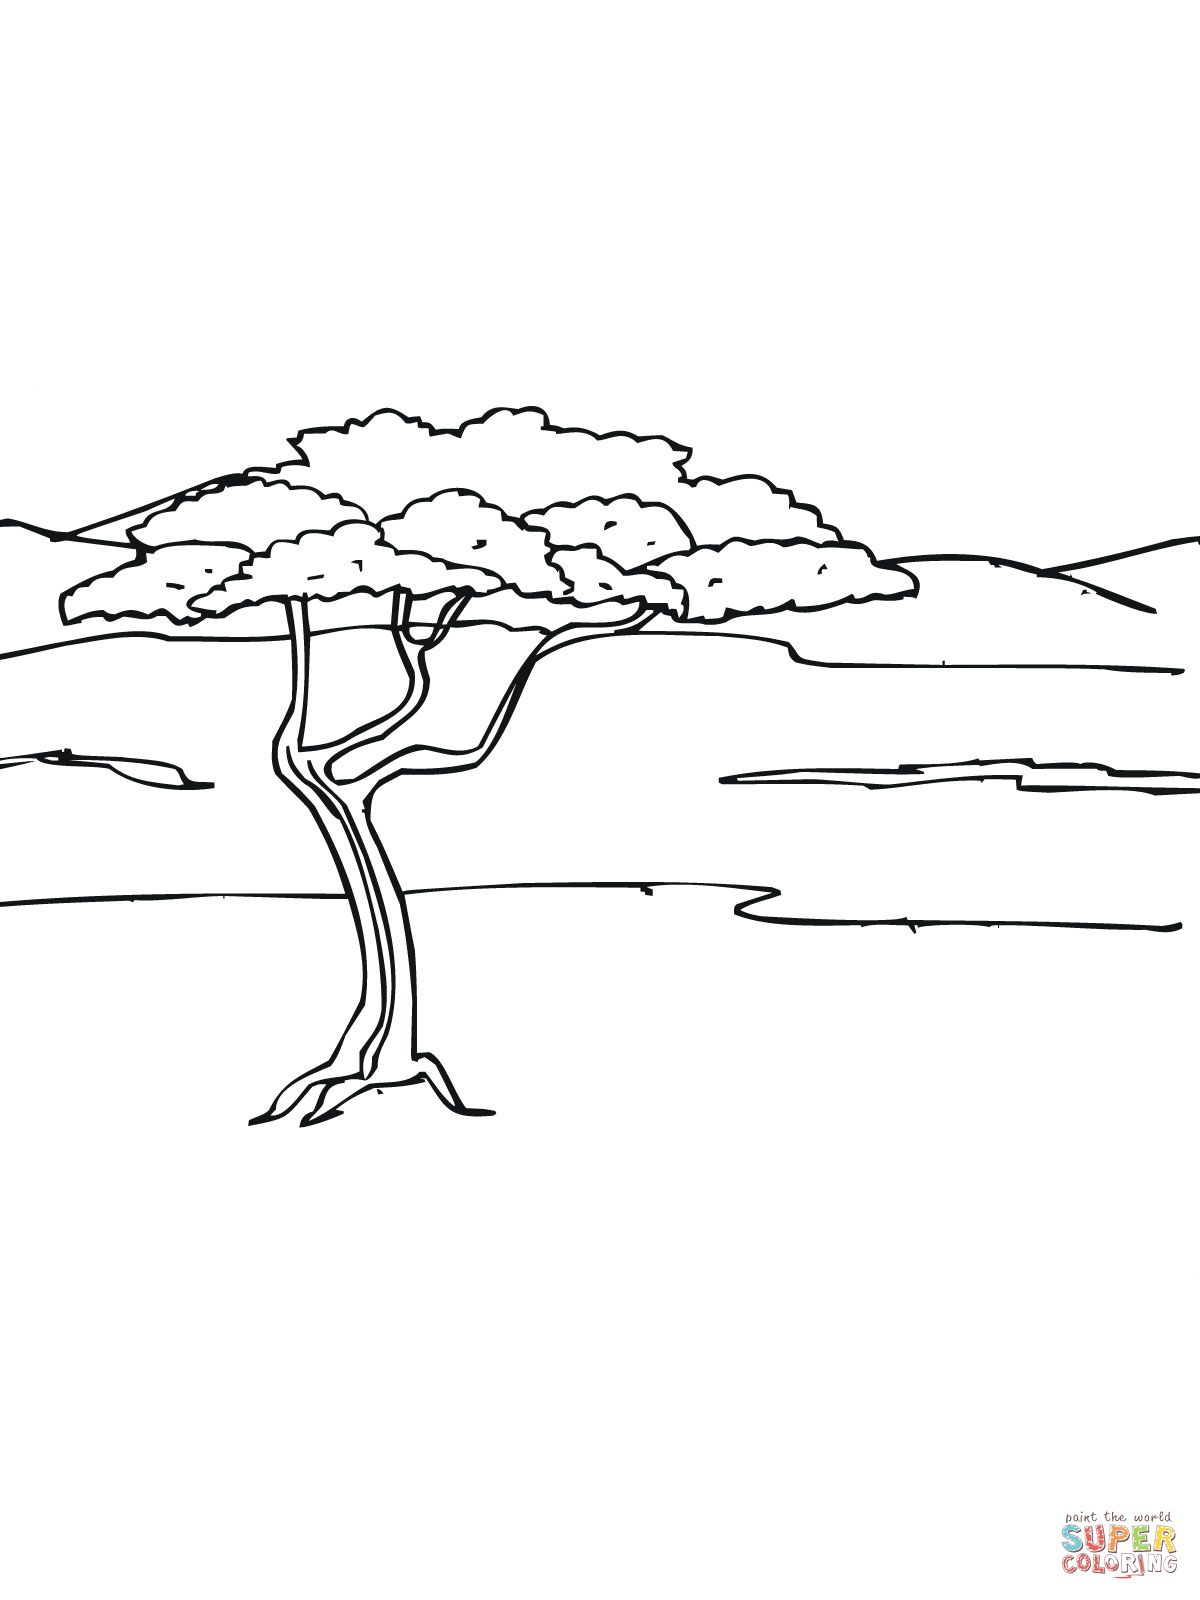 Acacia Tree In Savanna Coloring Page Jpg 1200 1600 Animal